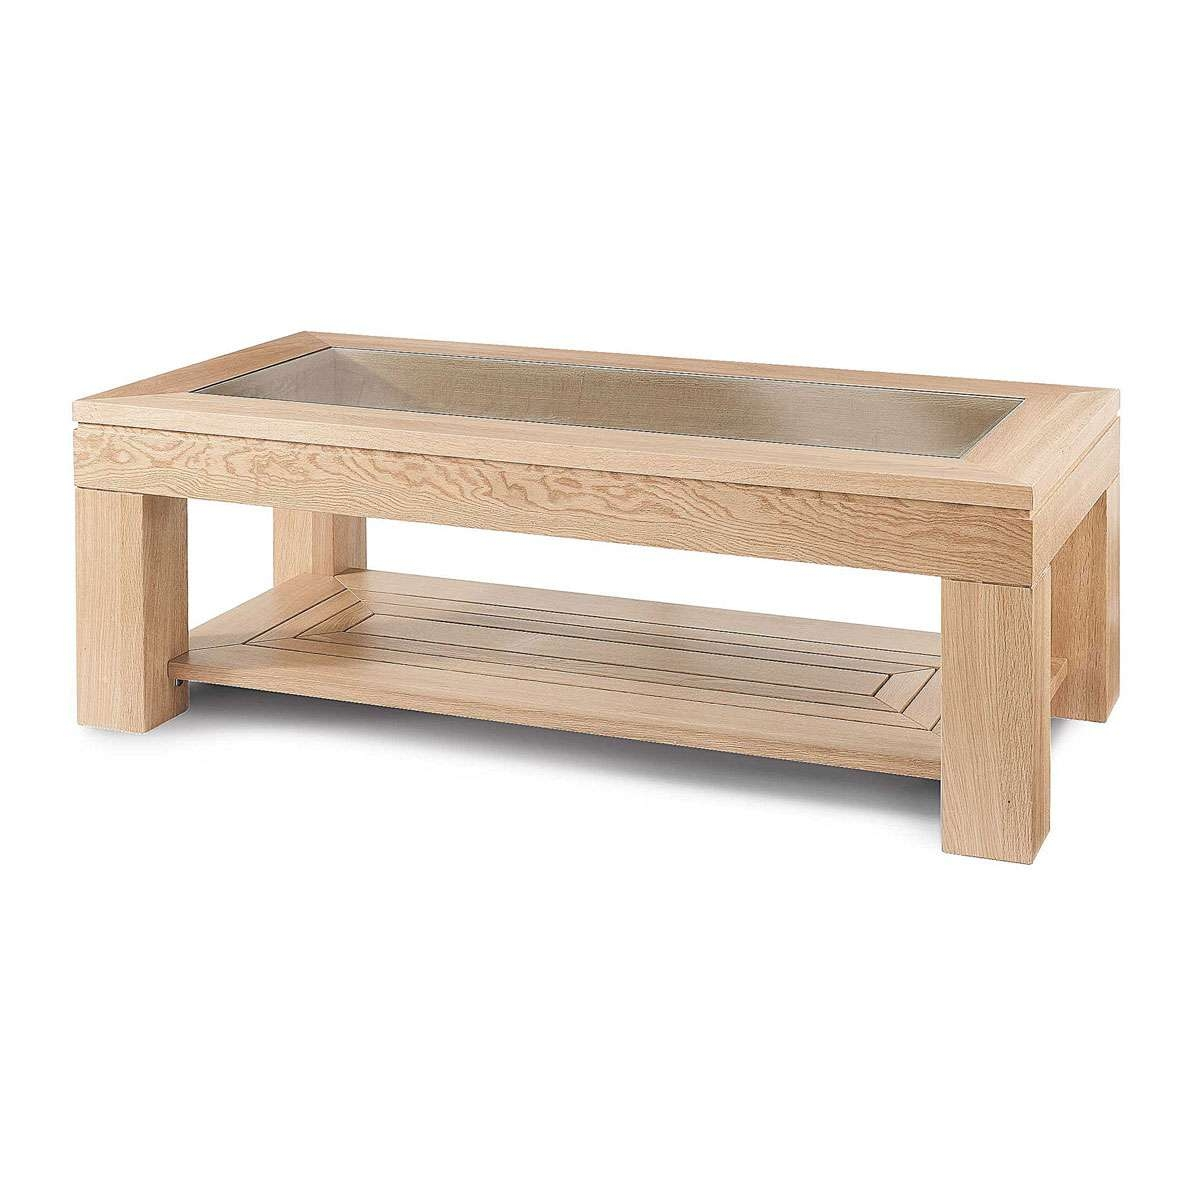 Latest Glass And Oak Coffee Tables Inside Oak Coffee Table With Glass Top – Gray Soft Carpet Area, Clear (View 12 of 20)